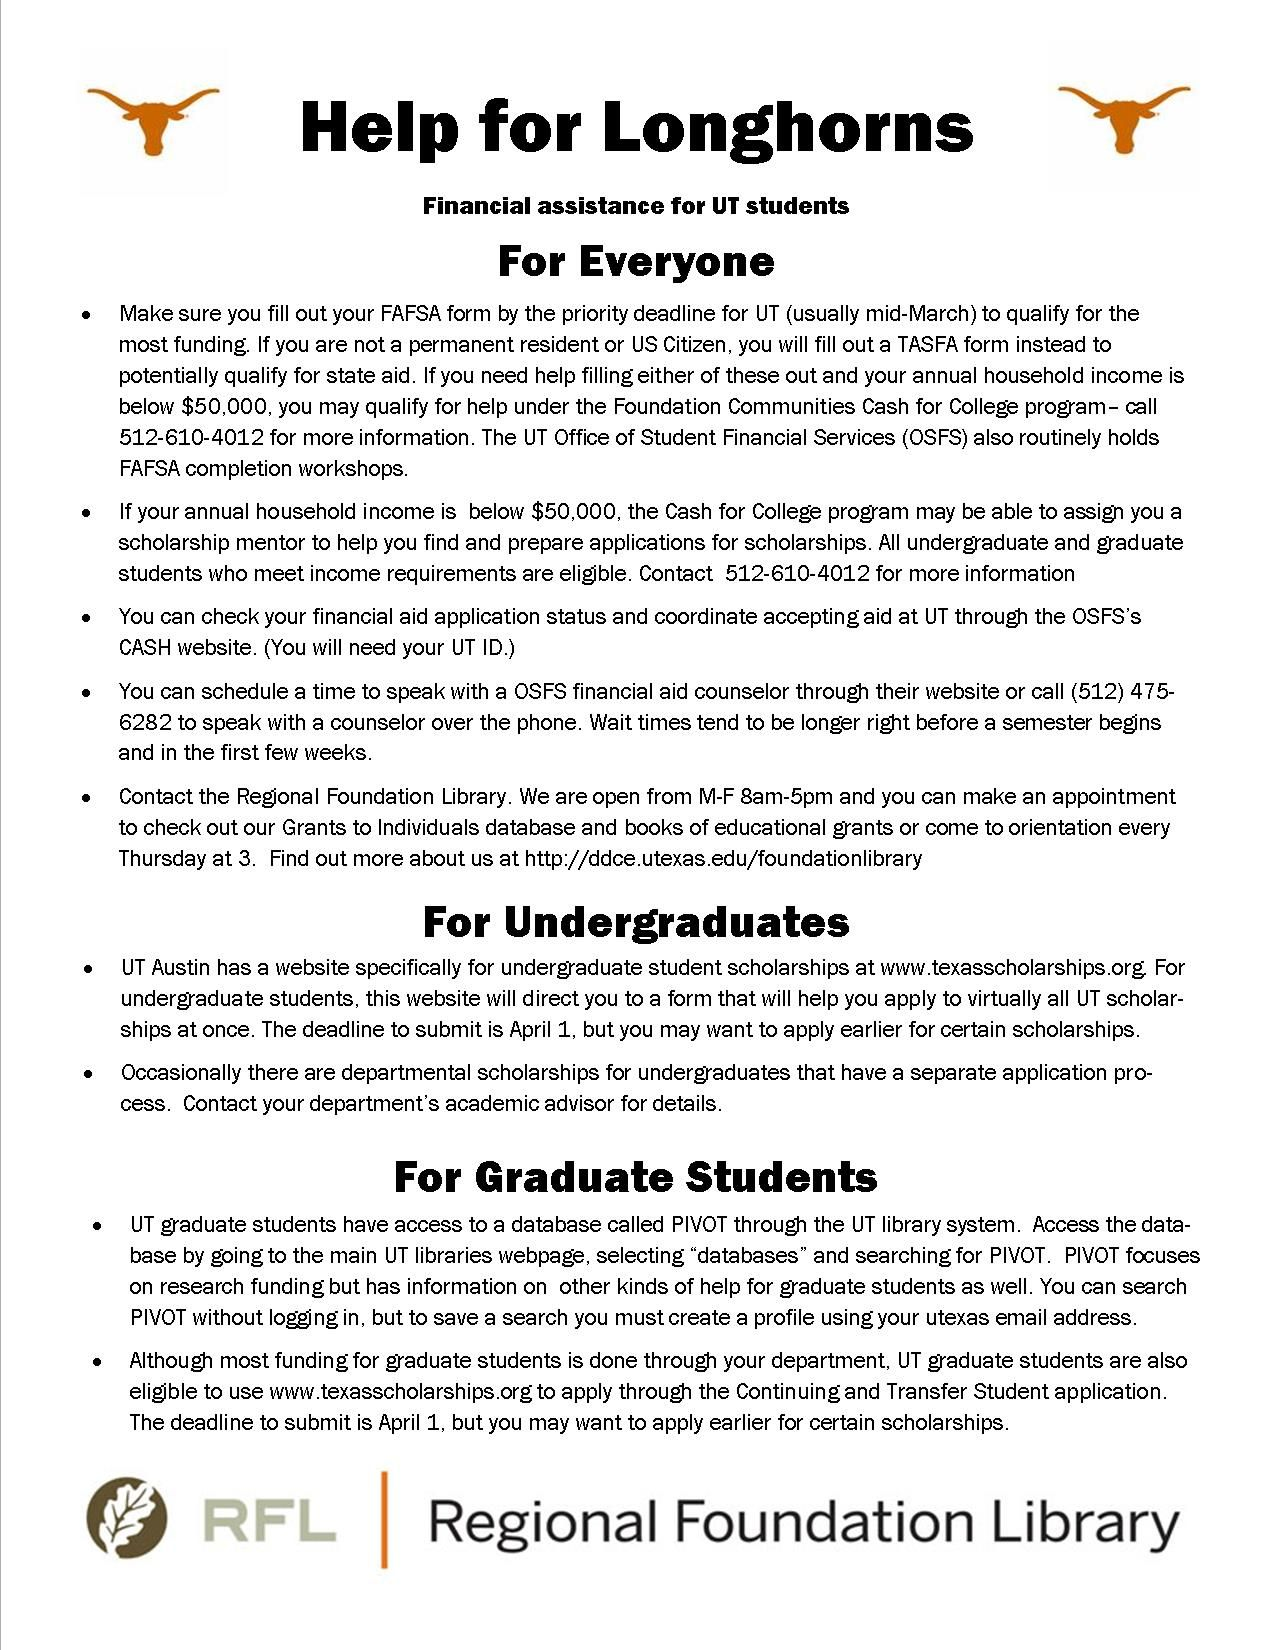 Our Flyer On Financial Aid Sources For Ut Students Ut Austin Scholarships Fellowships Finaid Student Scholarships Fafsa